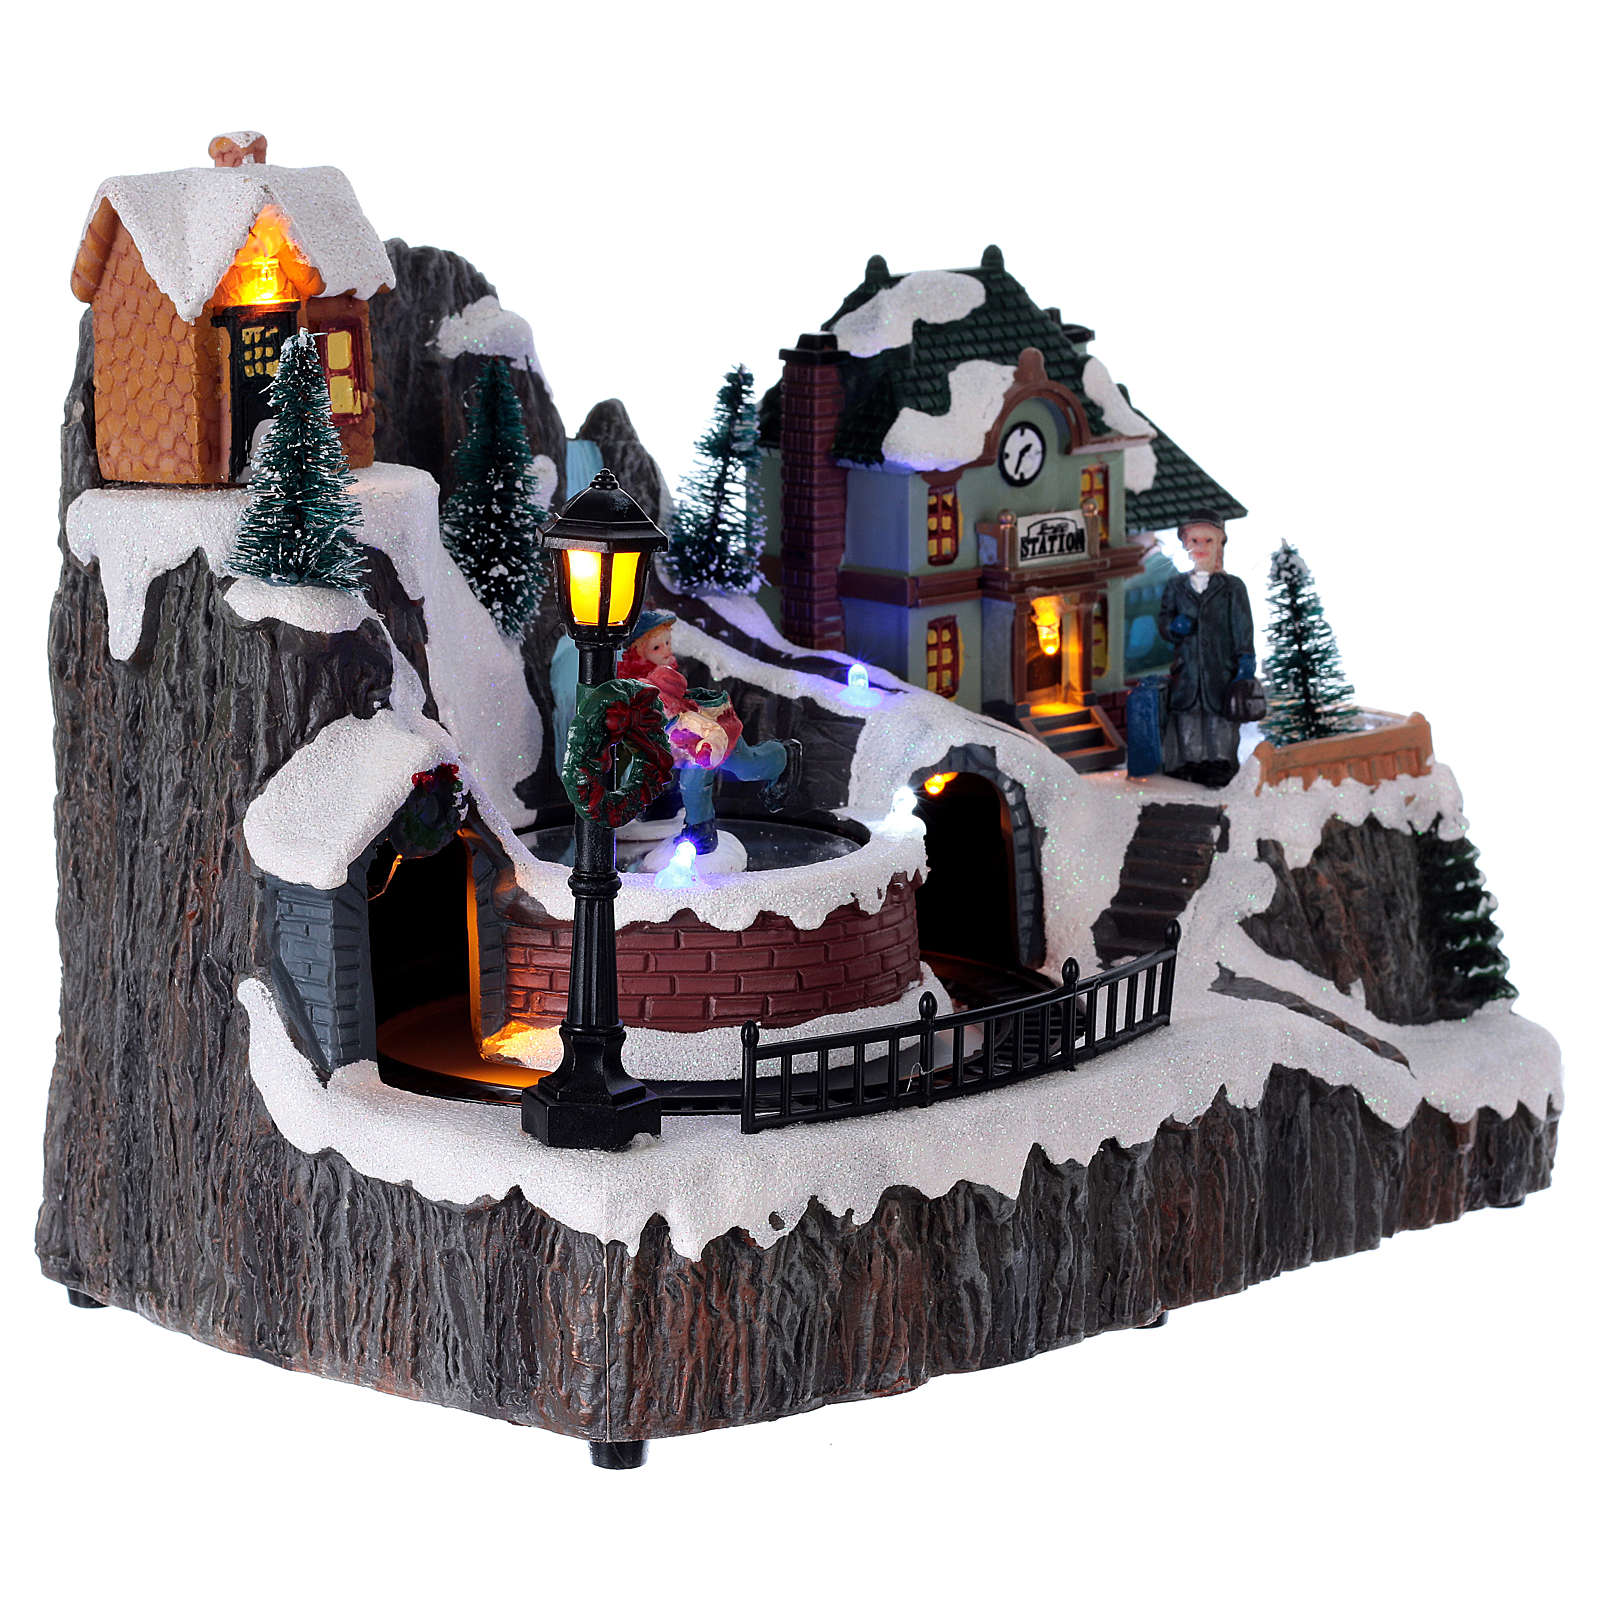 Christmas village with music, lights, station and moving train 20x20x15 cm 3